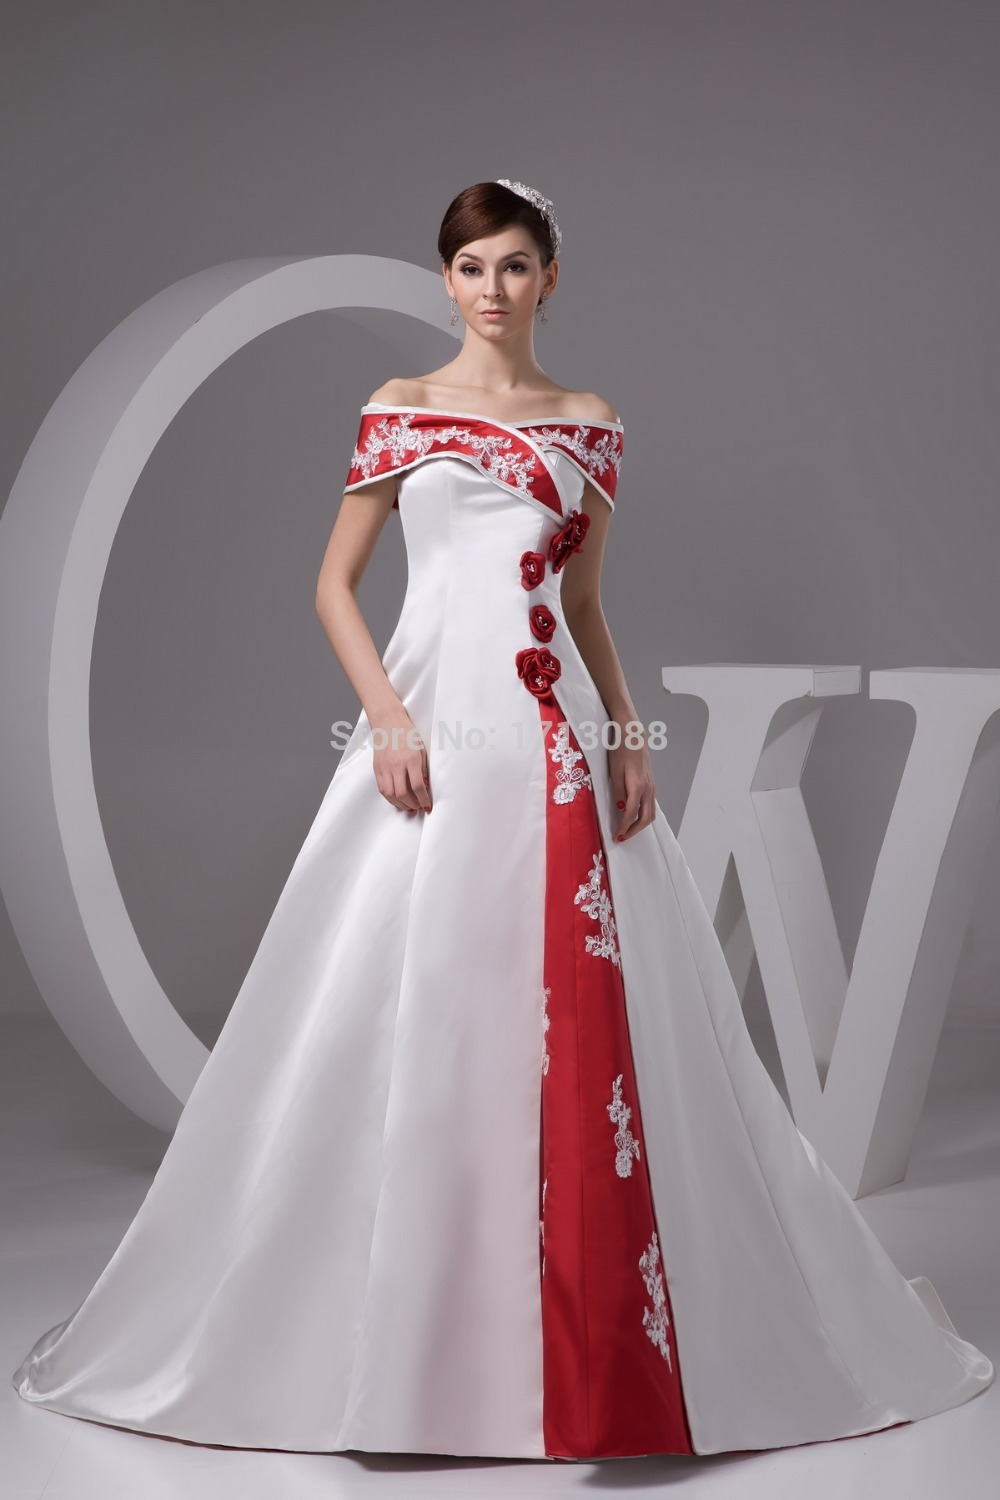 some beautiful non traditional wedding dresses for wedding untraditional wedding dresses Some Beautiful Non Traditional Wedding Dresses for Wedding Look for best gallery photos